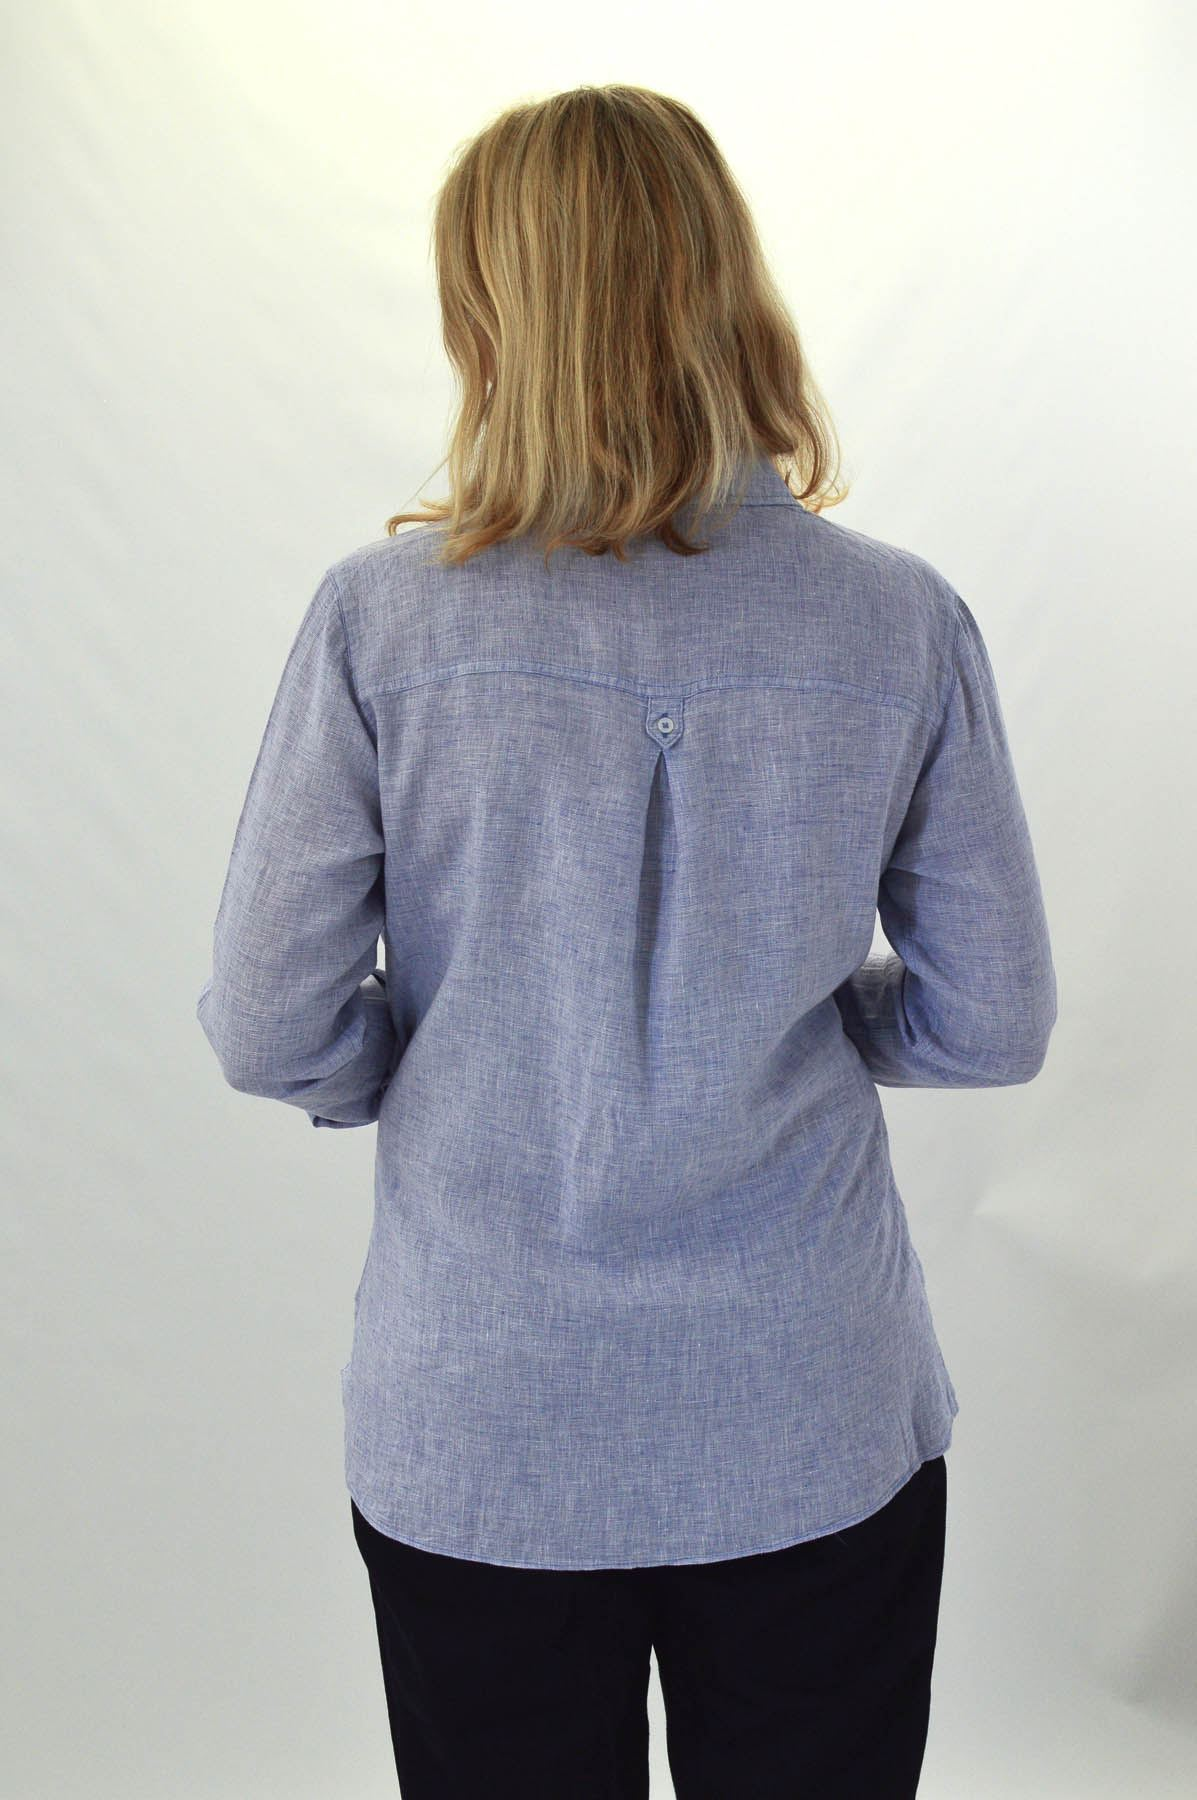 F/&F Pale Blue Linen Shirt Long Sleeves Tabs Breast Pockets Size 6-22